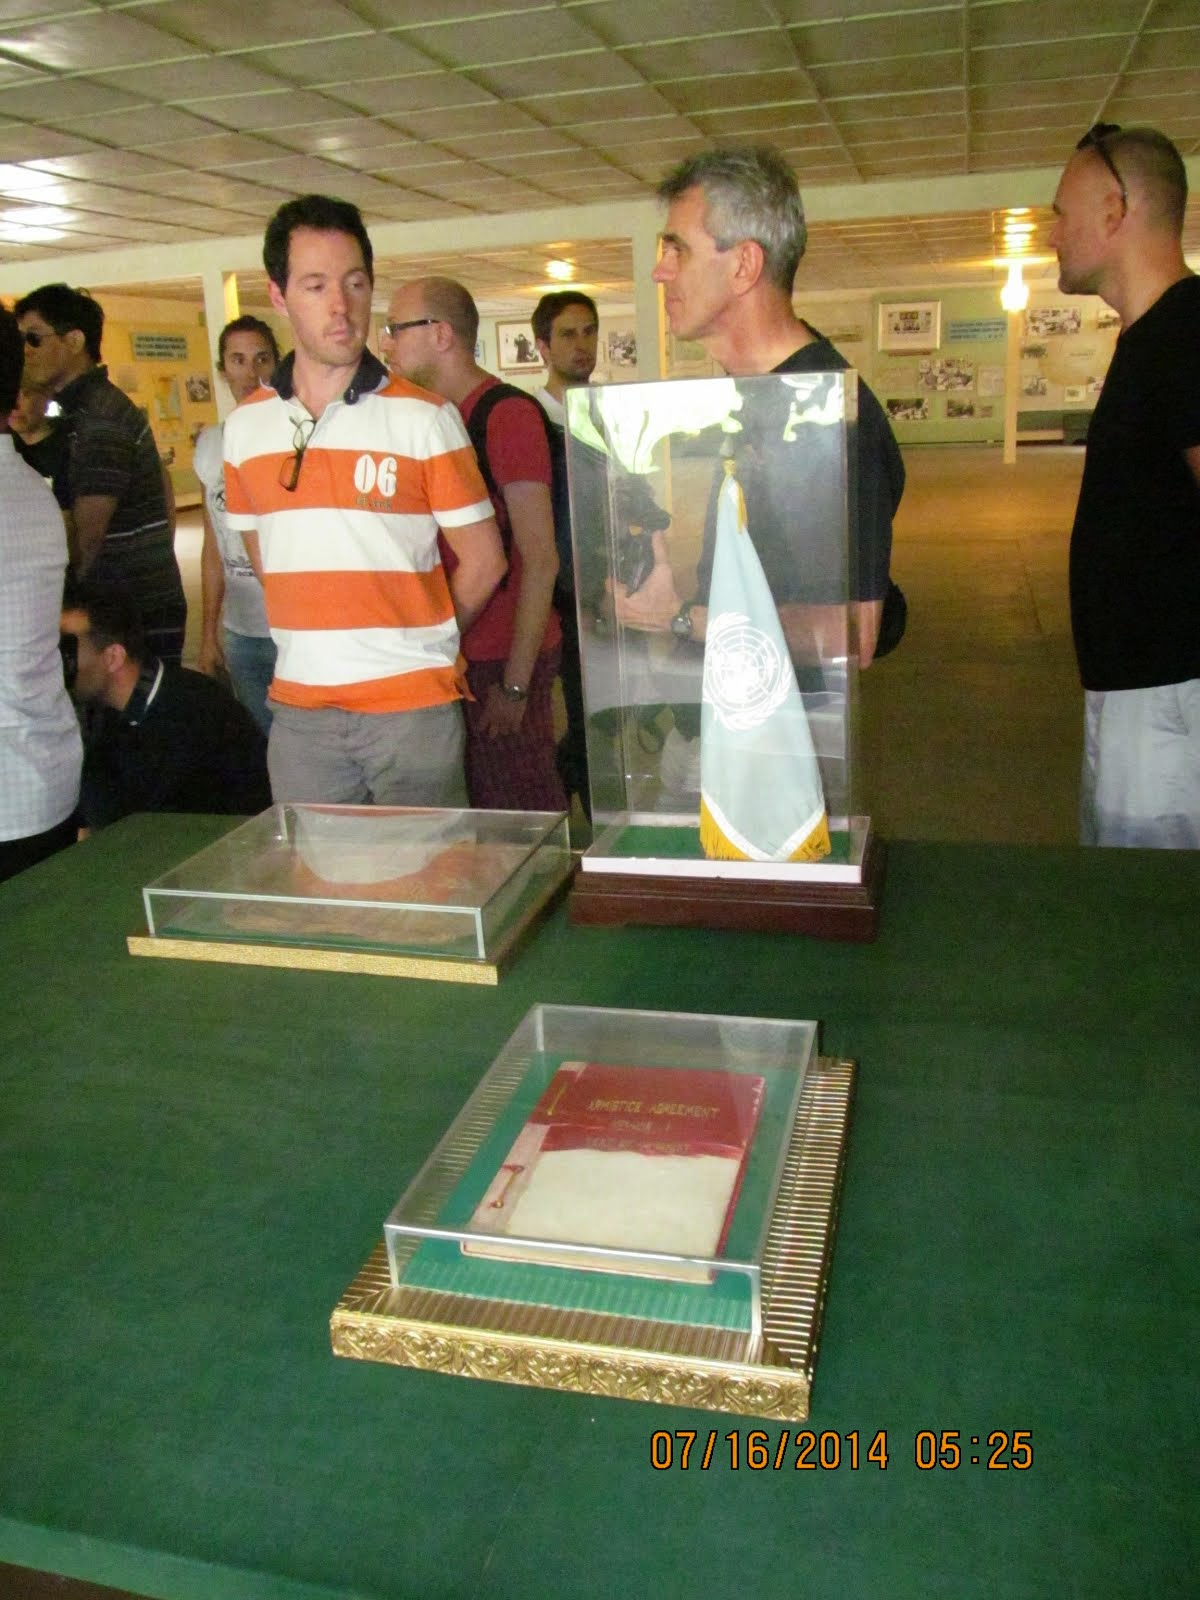 Armistice Agreement under plexiglas, North Korean Panmungak Hall, DMZ between the two Koreas